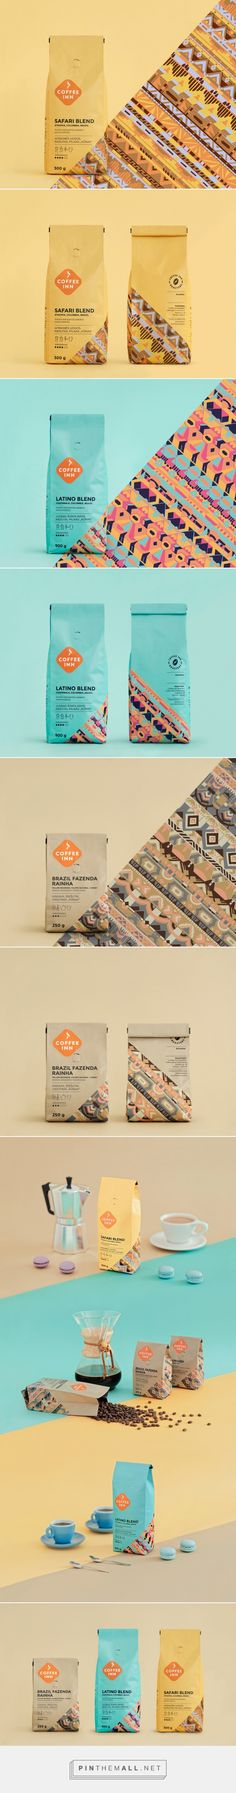 Coffee Inn - Packaging of the World - Creative Package Design Gallery…